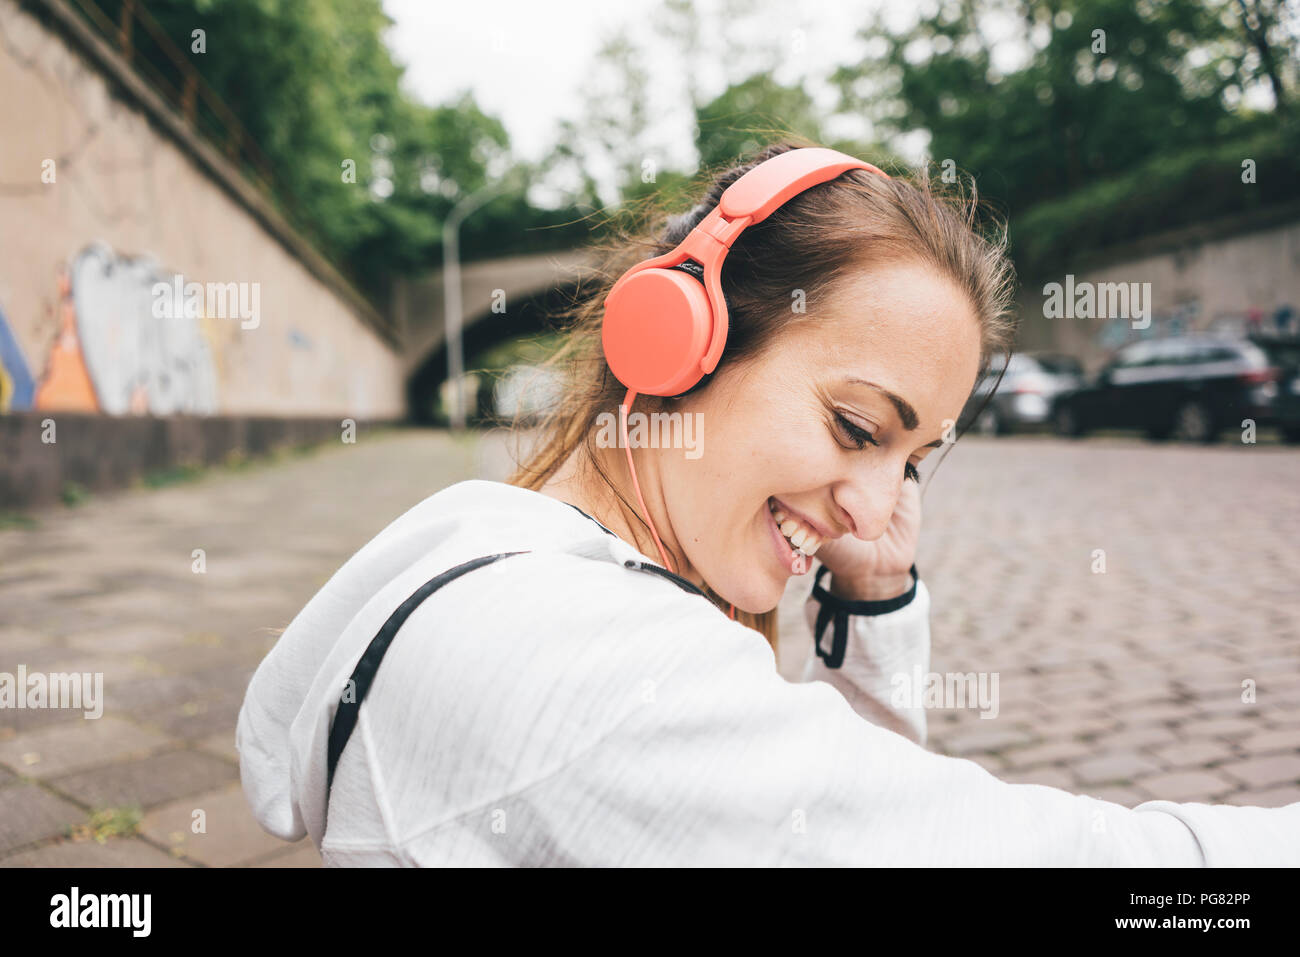 Smiling sportive young woman wearing headphones outdoors - Stock Image